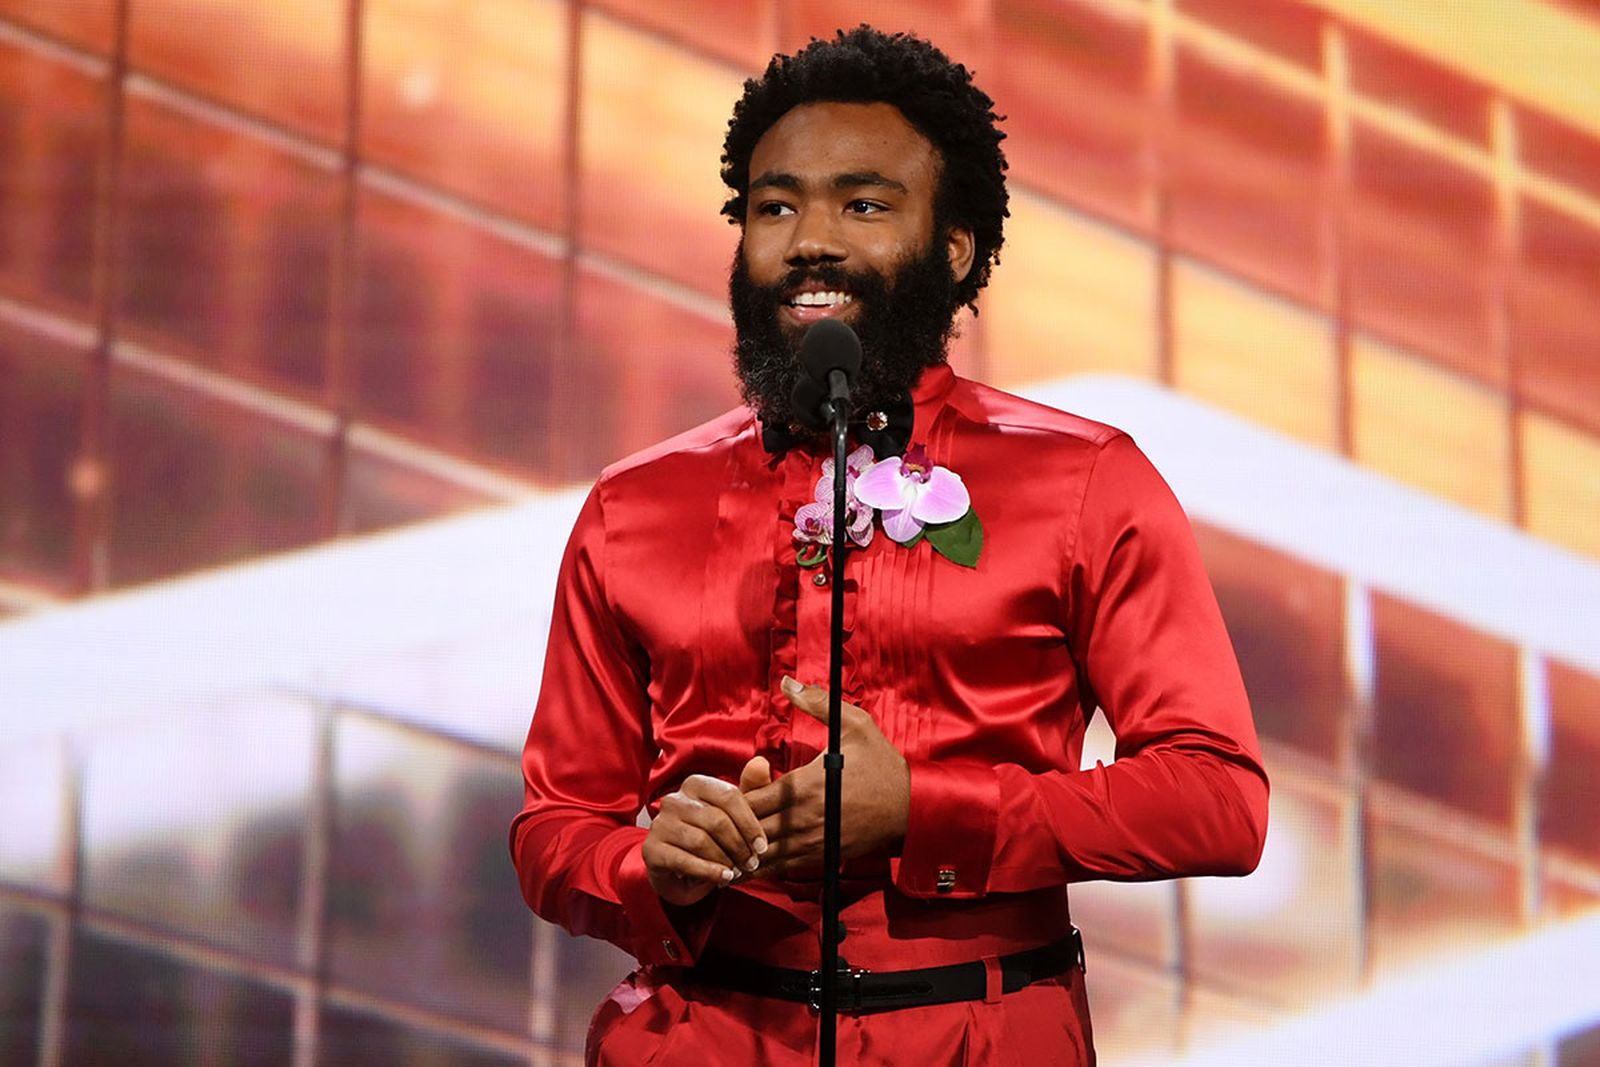 Donald Glover on stage in red outfit